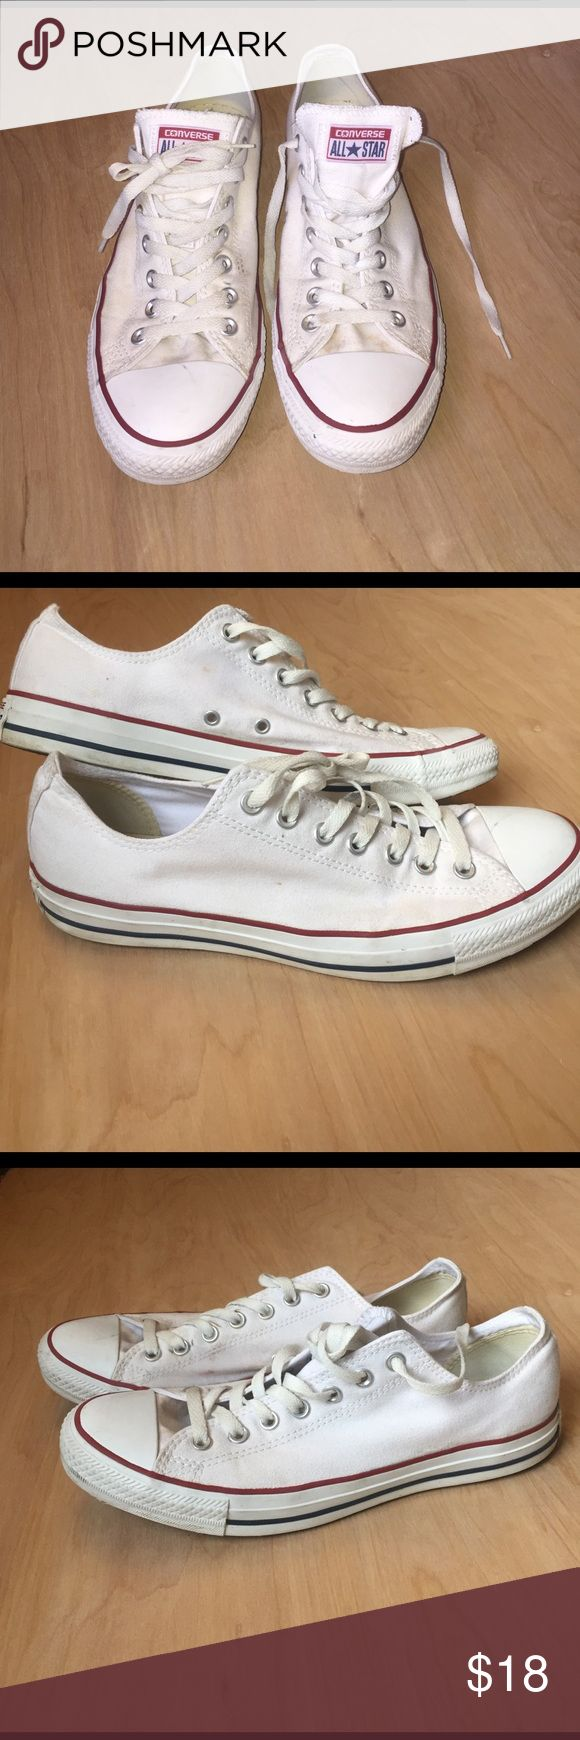 Classic Converse Chuck Taylor All Star Low Top Classic white converse sneakers! Men's size 10 or ladies size 12. These were purchased for a wedding and only worn that one day. They are in great condition besides a few small marks on the white, they aren't even broken in. Converse Shoes Sneakers